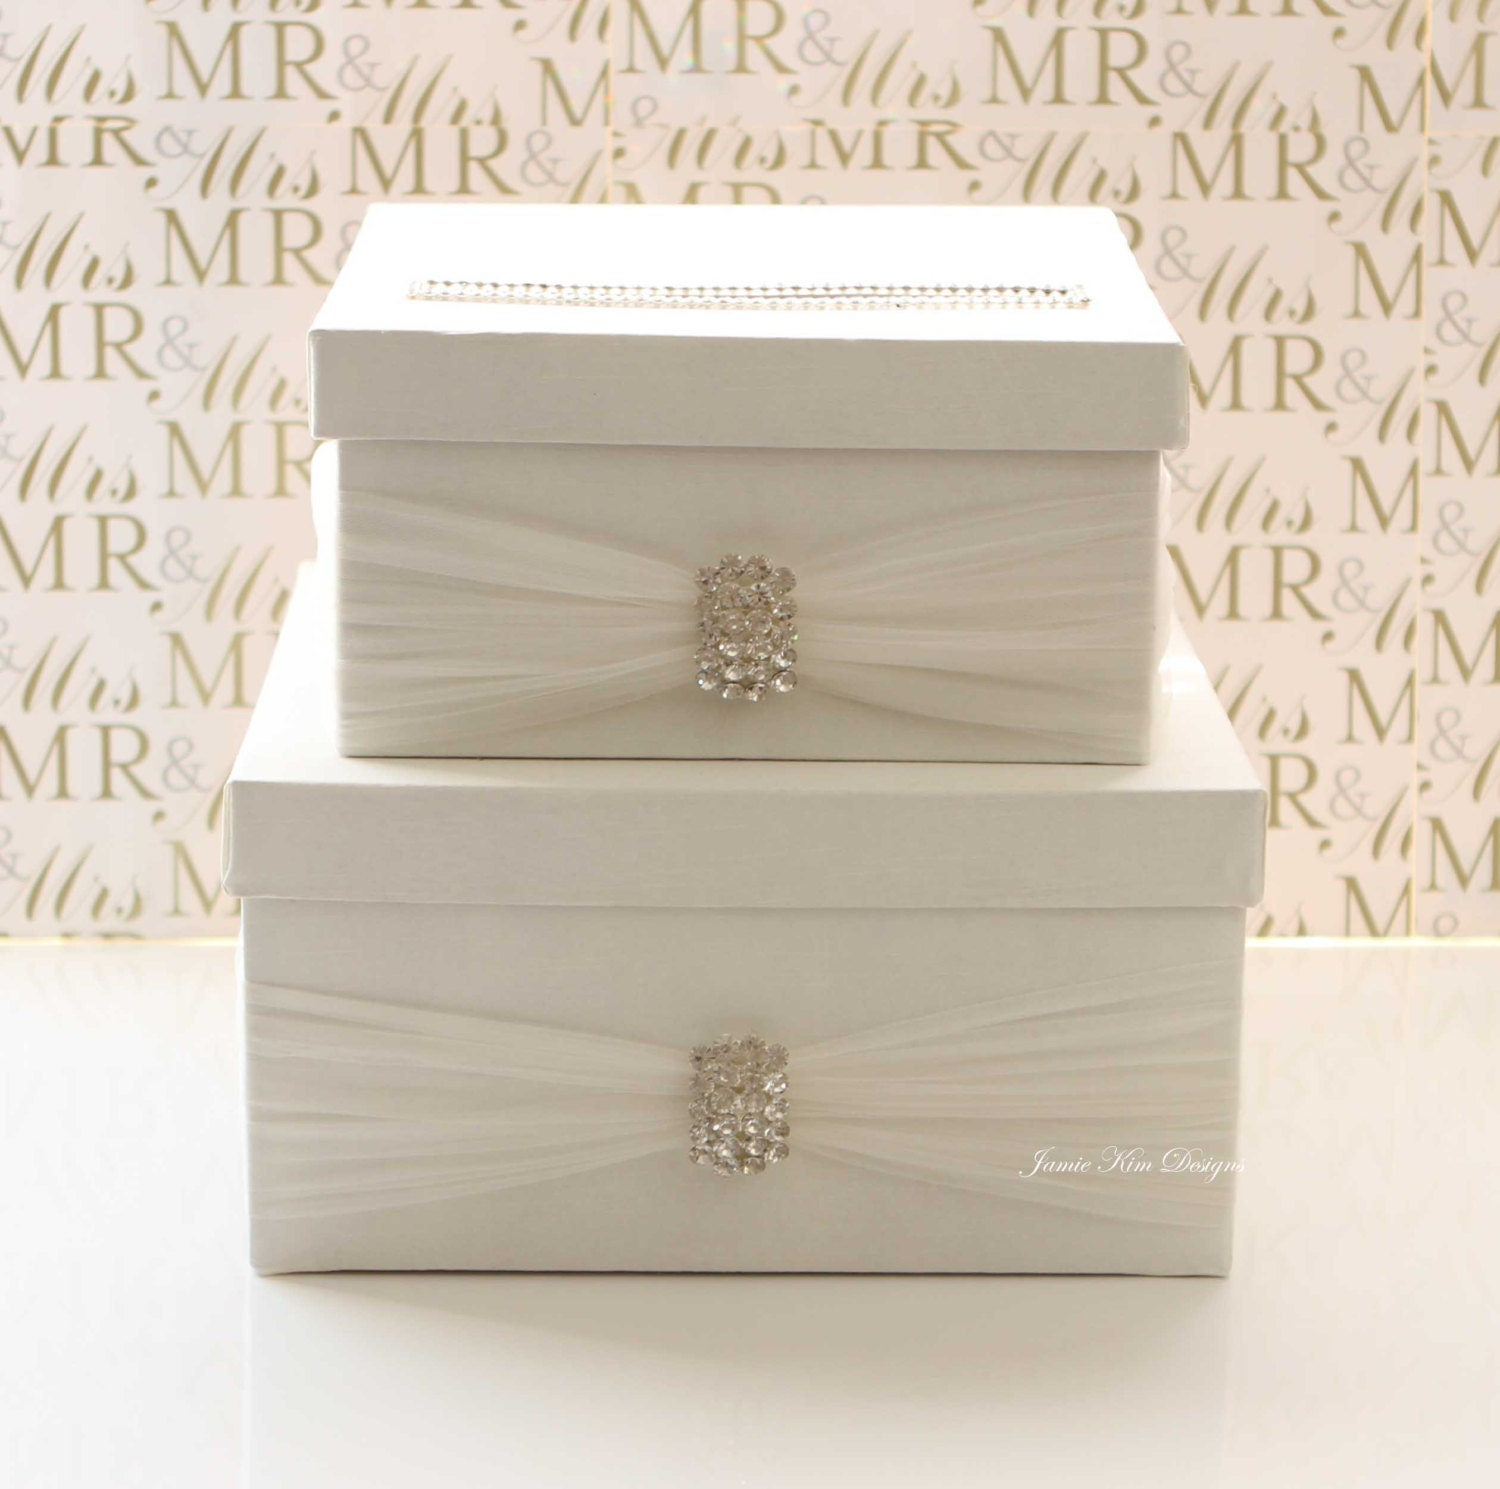 Wedding Card Holder Gift Ideas: Wedding Card Box Money Box Gift Card Holder Custom Made To